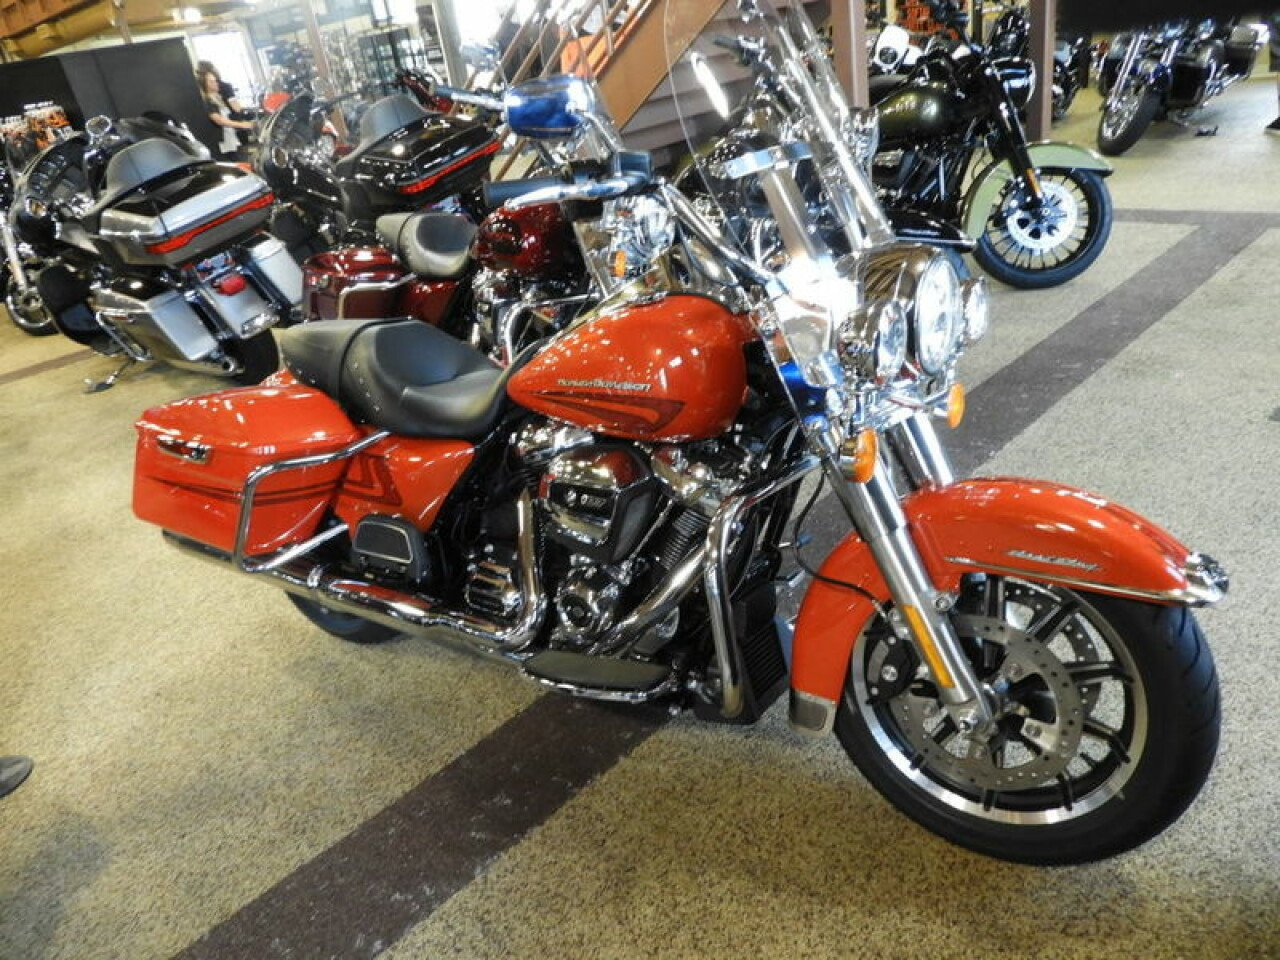 2018 Harley Davidson Motorcycles For Sale Texas >> 2017 Harley-Davidson Touring Road King for sale near Garland, Texas 75041 - Motorcycles on ...